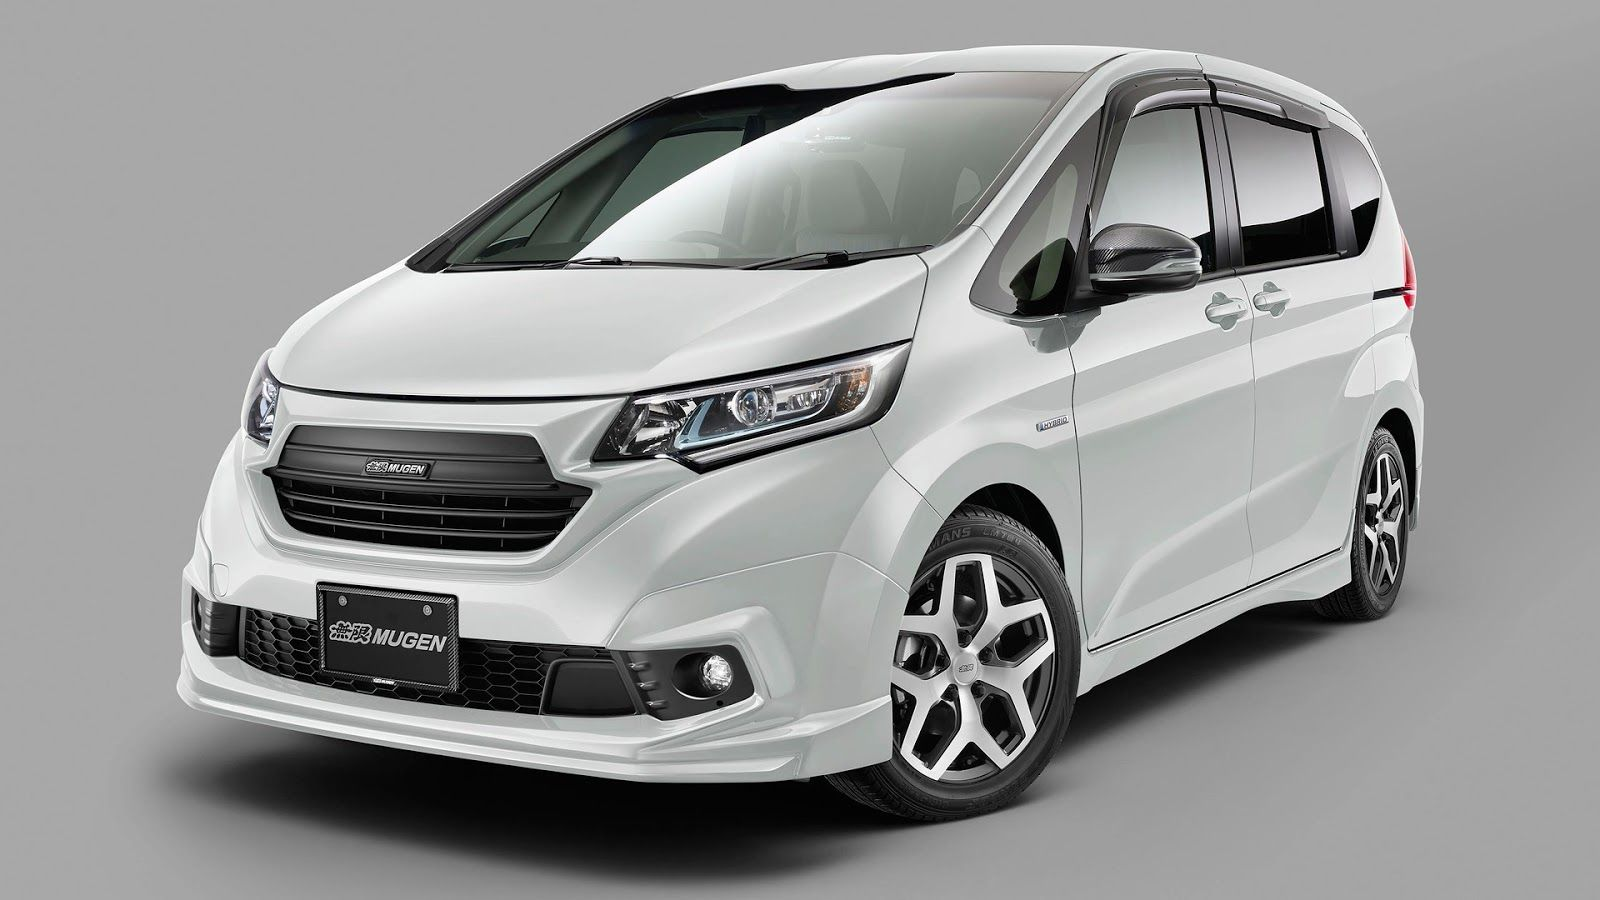 Customized honda minivans will debut at the tokyo auto salon the 2017 tokyo auto salon is